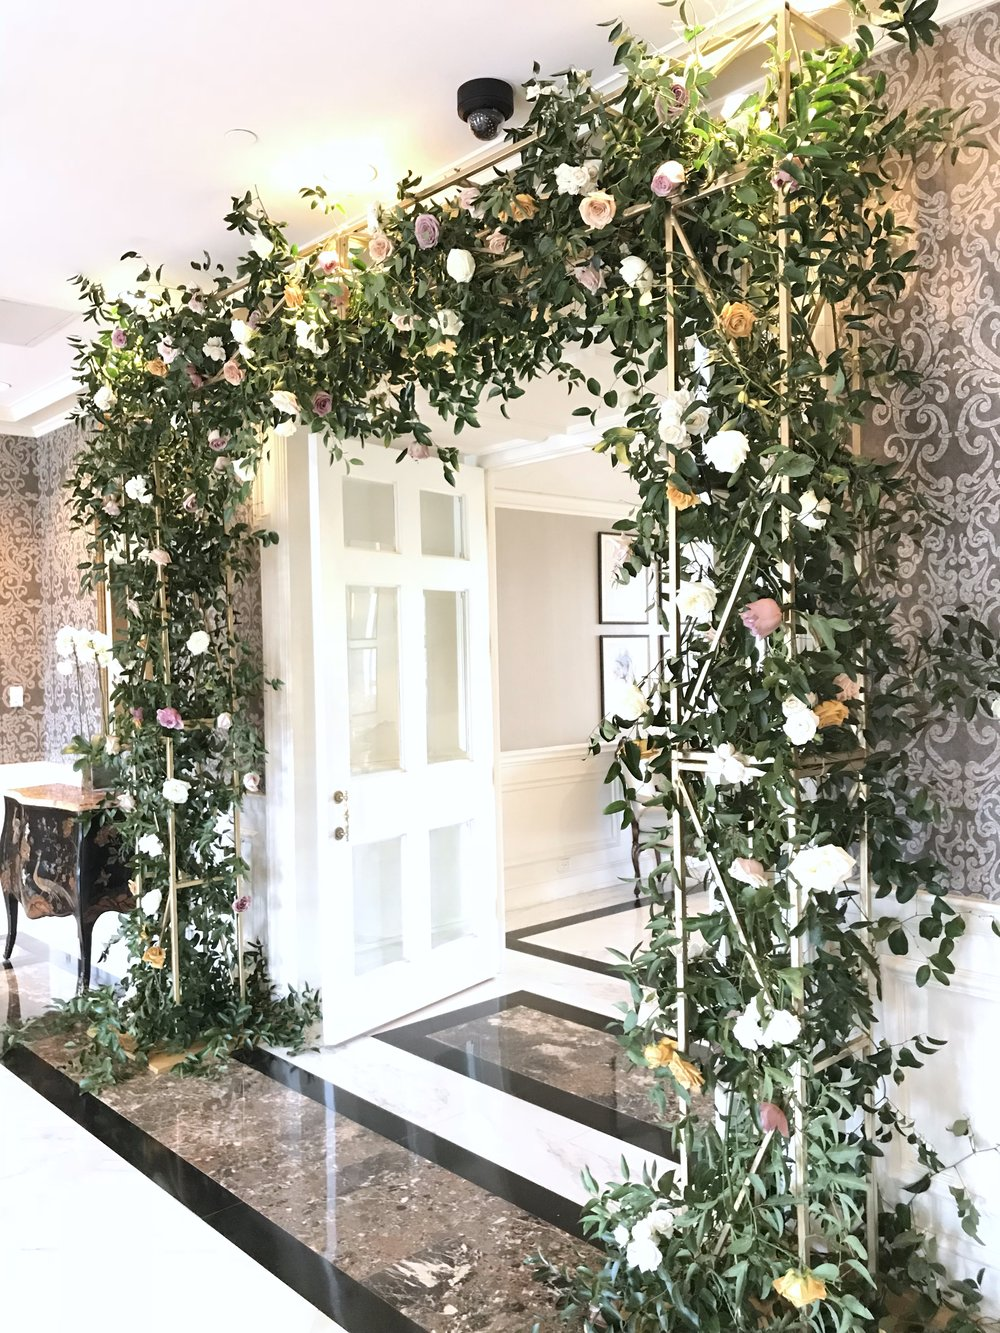 Entry arch covered in flowers, with coral charm peonies, garden roses, roses, ranunculus, spirea, black berries and smilax. Keely Thorne Event Planning, River Oaks Country Club, Maxit Flower Design